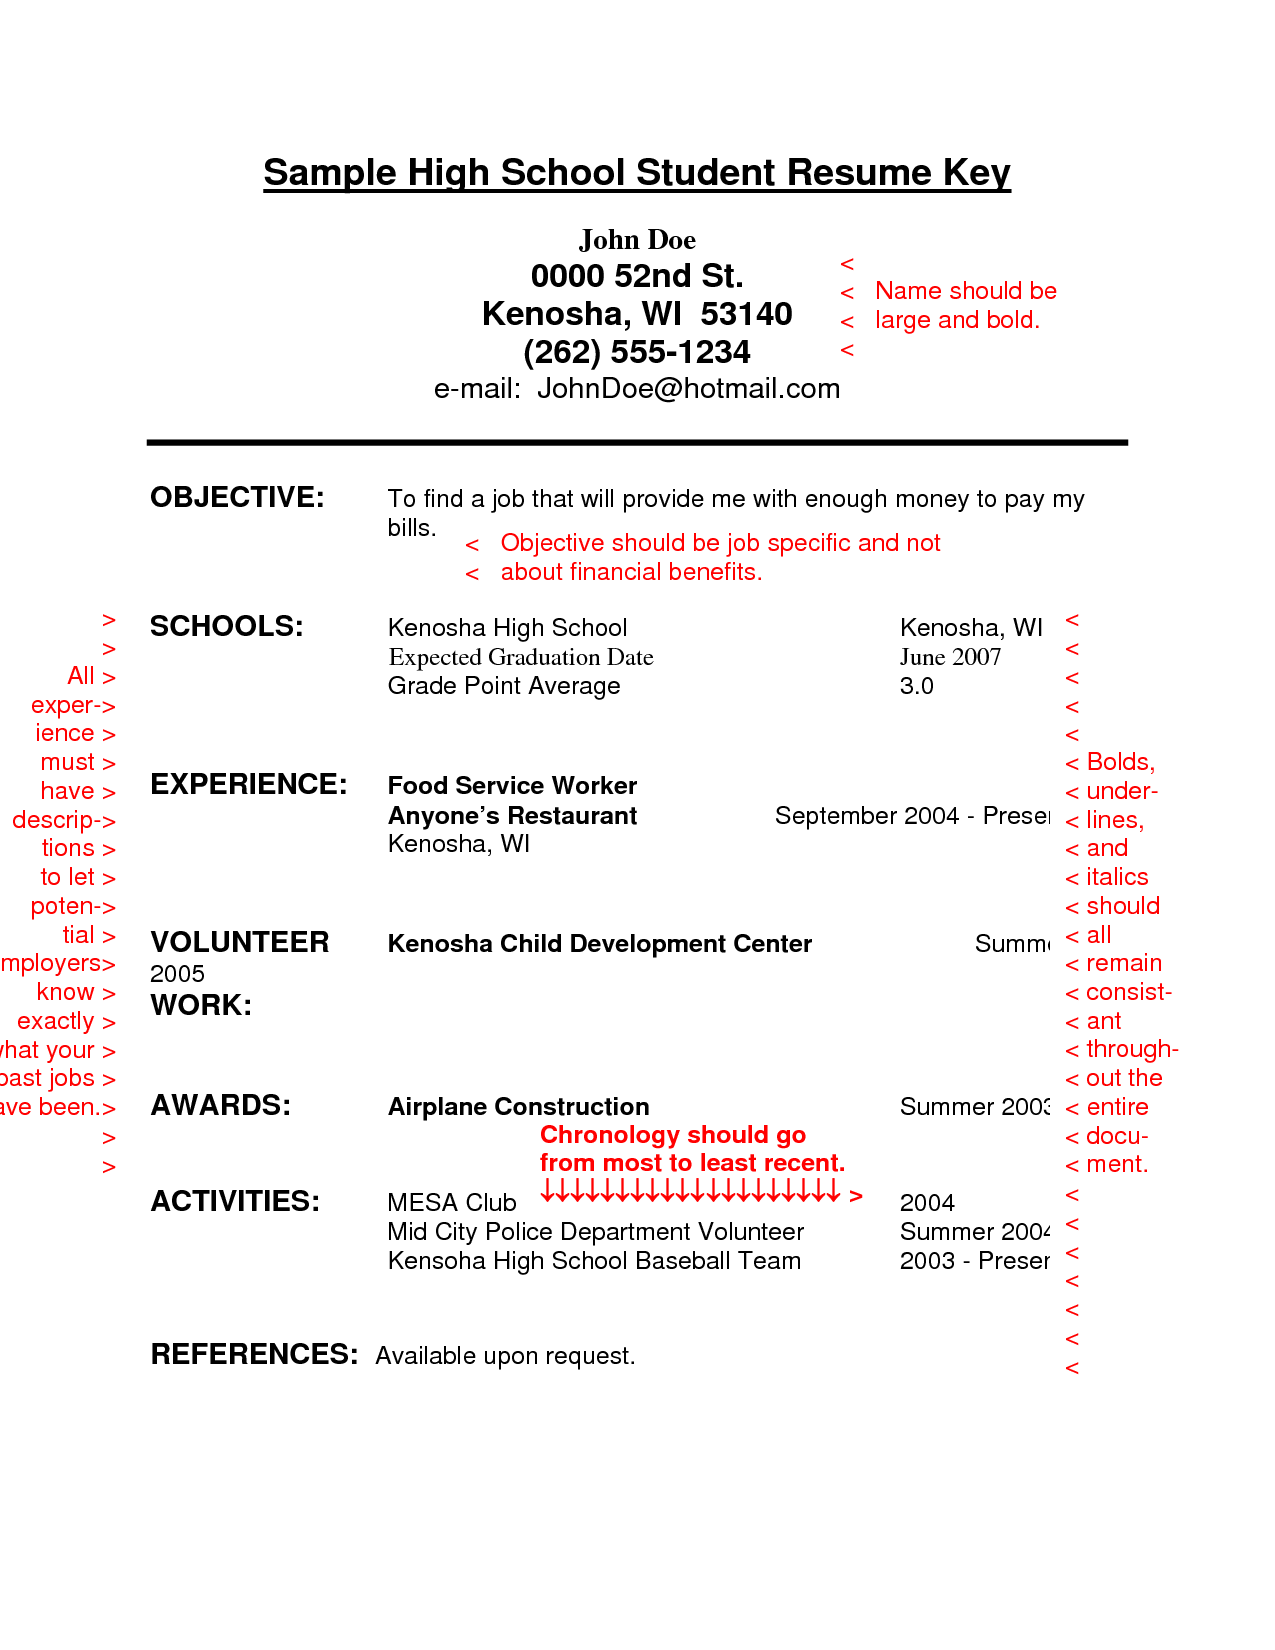 Resume Student Resumes For Jobs resume sample for high school students with no experience http httpwww